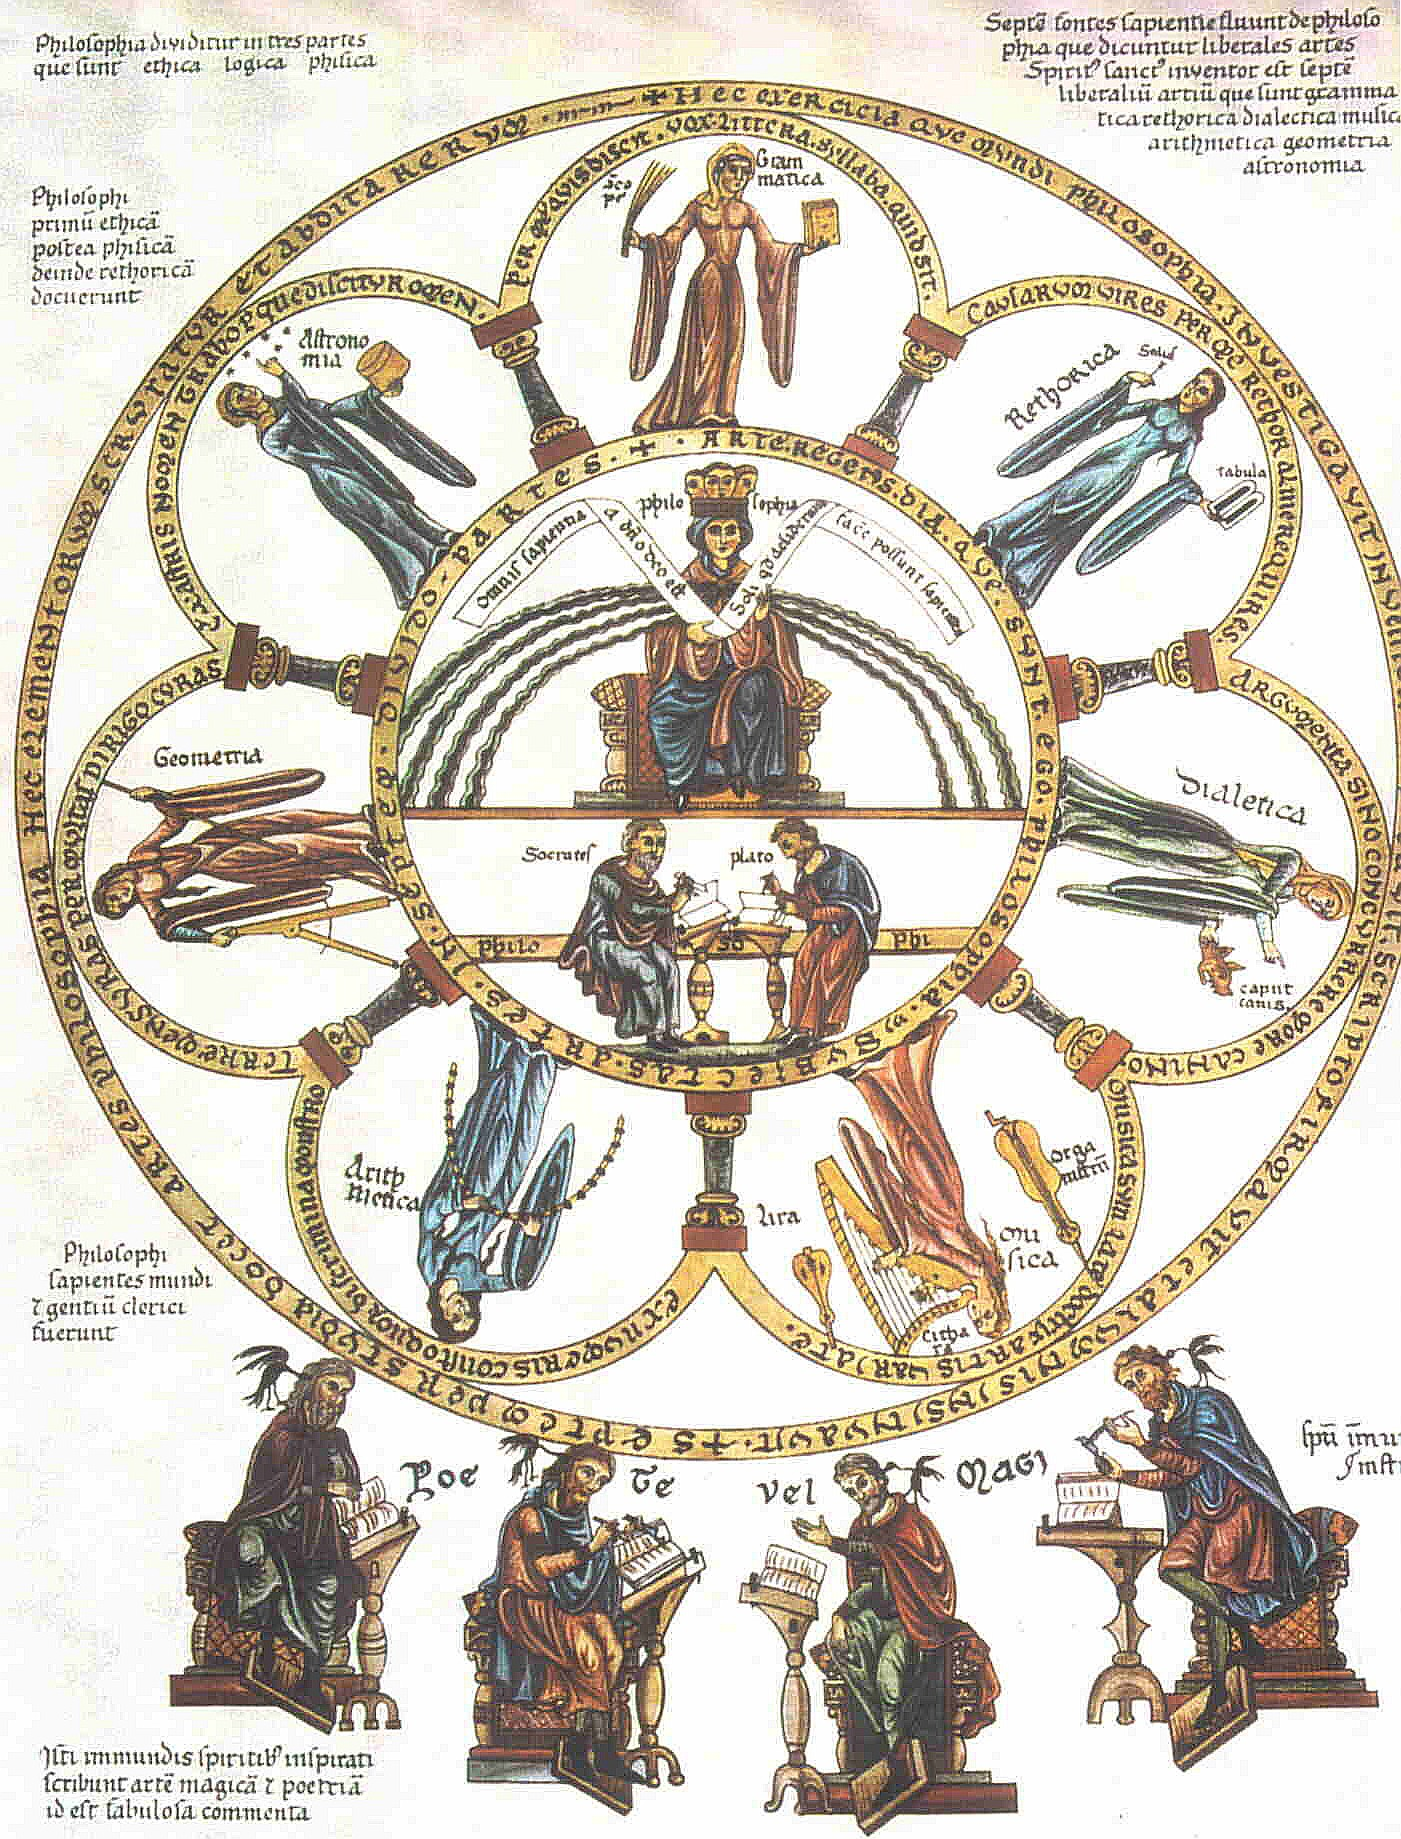 Plate 8 of the Englehardt facsimile of the Hortus delicarum. In the centermost circle, Philosophy rests upon a queenly throne, holding a banner that says 'All wisdom comes from God, only the wise can do what they want.' Directly below sit Socrates and Plato, at abutting desks. In the surrounding orbs stand the Seven Liberal arts: grammar, rhetoric, dialectics, music, arithmetic, geometry, and astronomy. (View Larger)